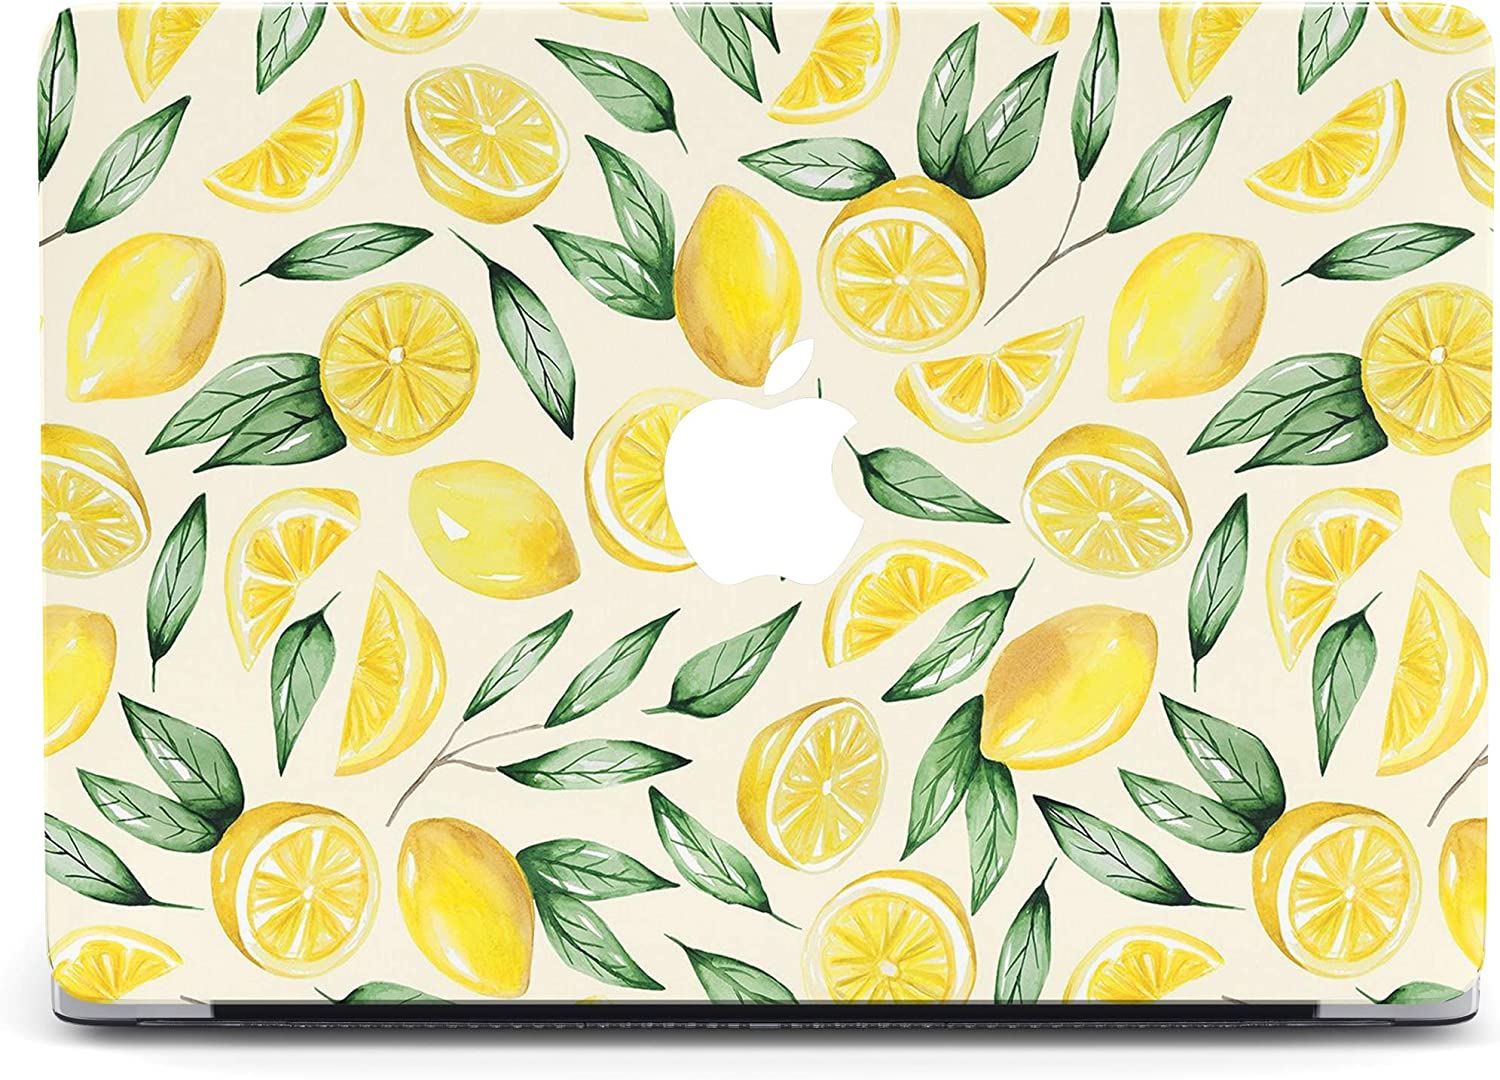 Food Lemon Protective case Compatible with Apple MacBook Mac Air Pro 13 12 15 16 13.3 inch Retina Cover SN3 (Air 13